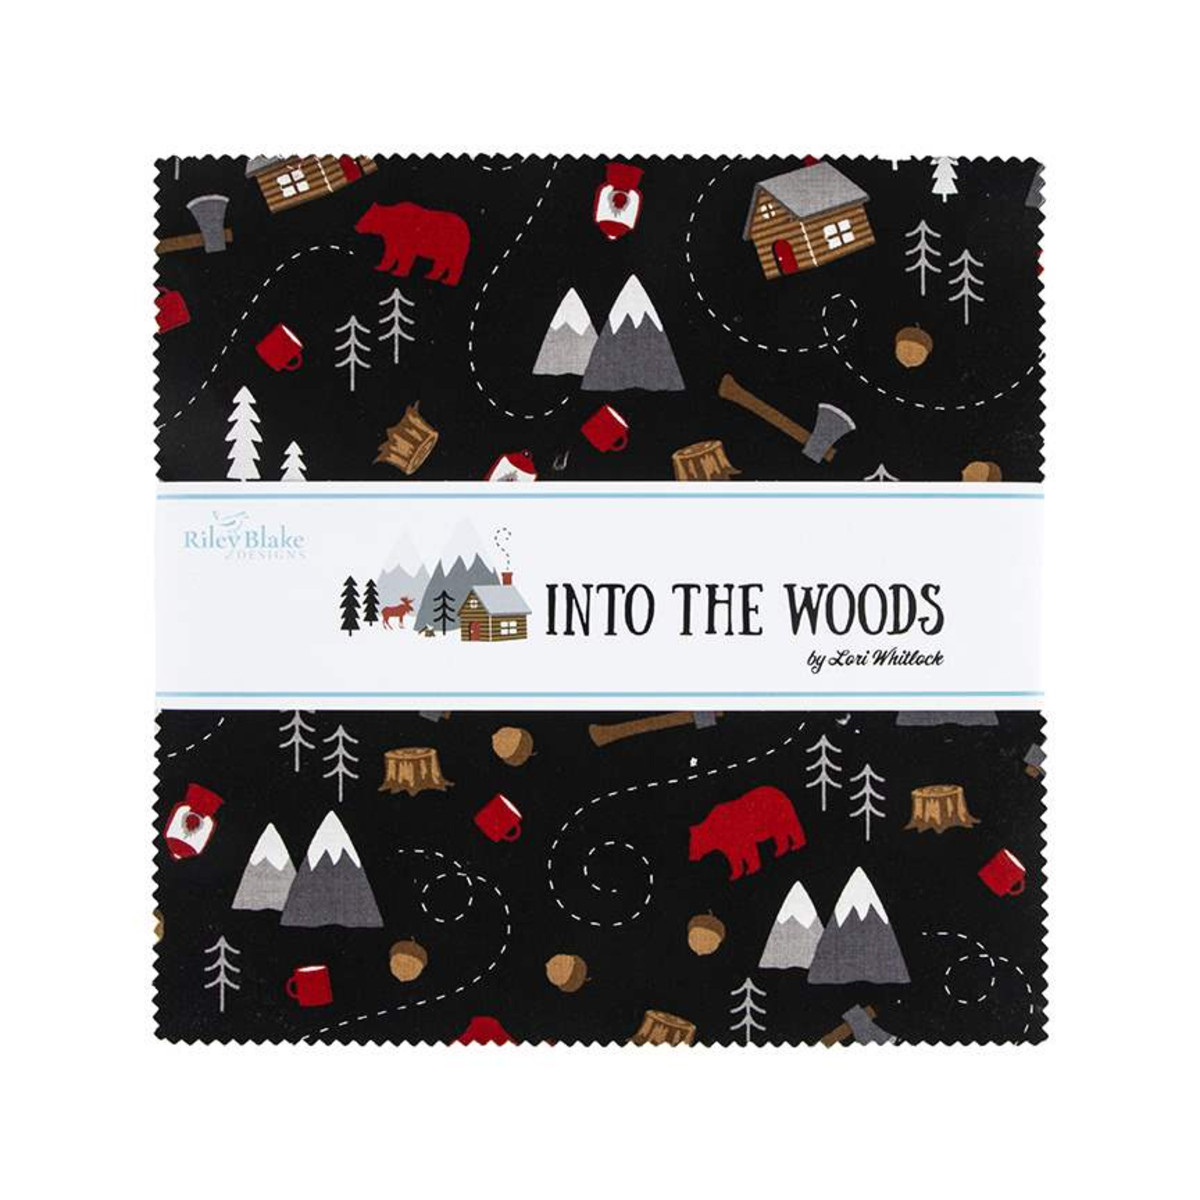 Riley Blake Layer Cake - Into the Woods by Lori Whitlock